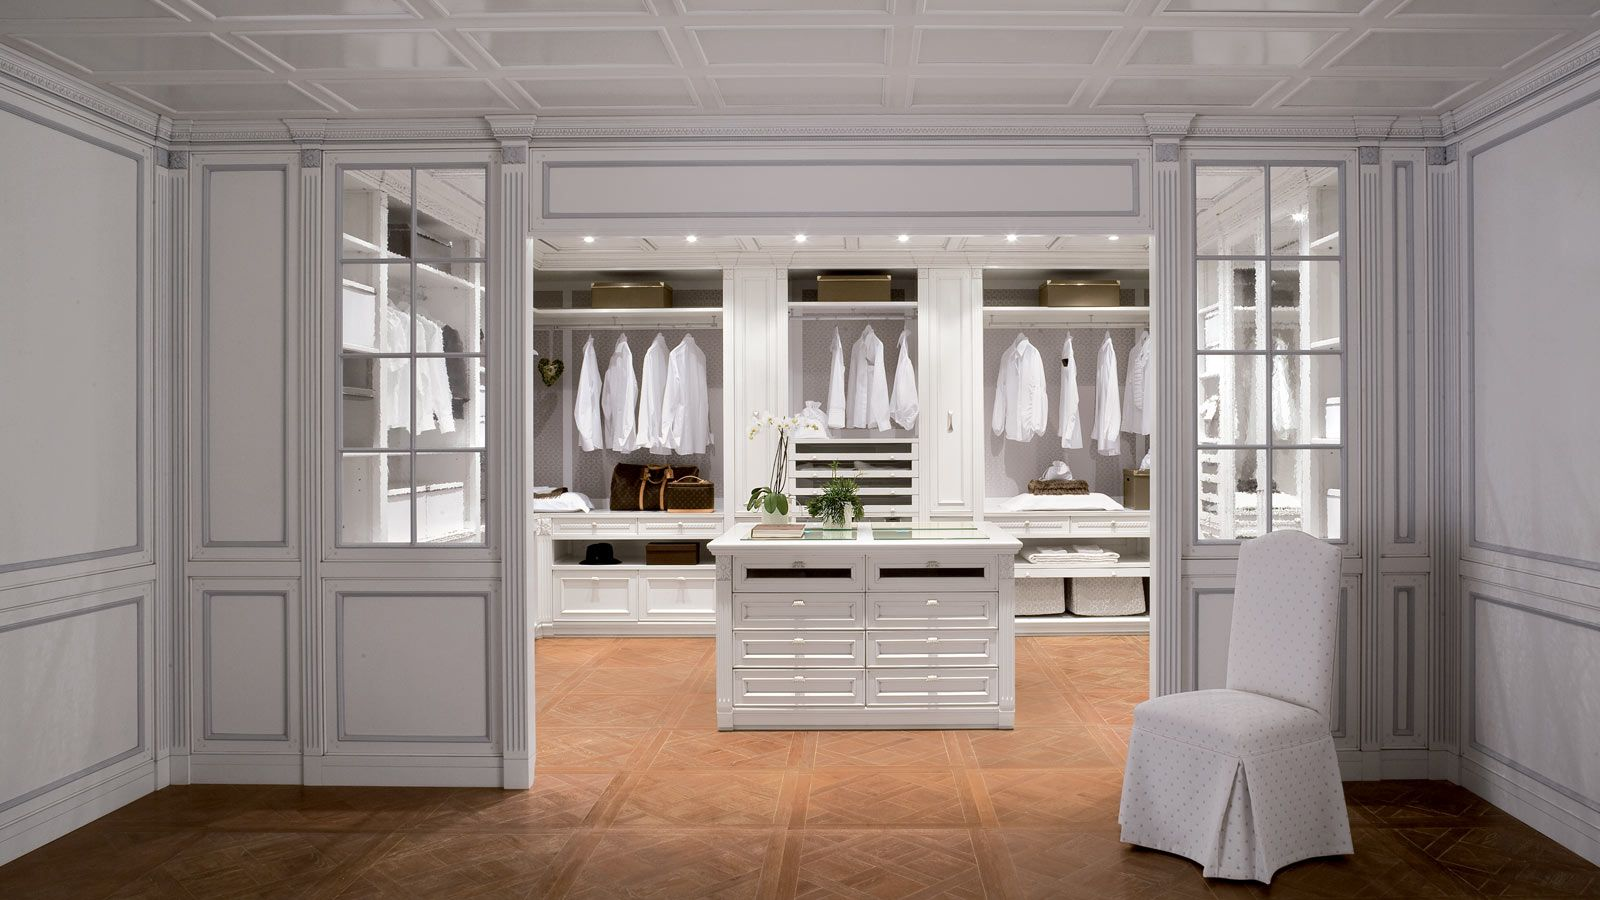 Closet And Wardrobe Designs Pure White Modern Walk In Design With Custom Classic Touches On The Chair Storage Unit Furniture Walls